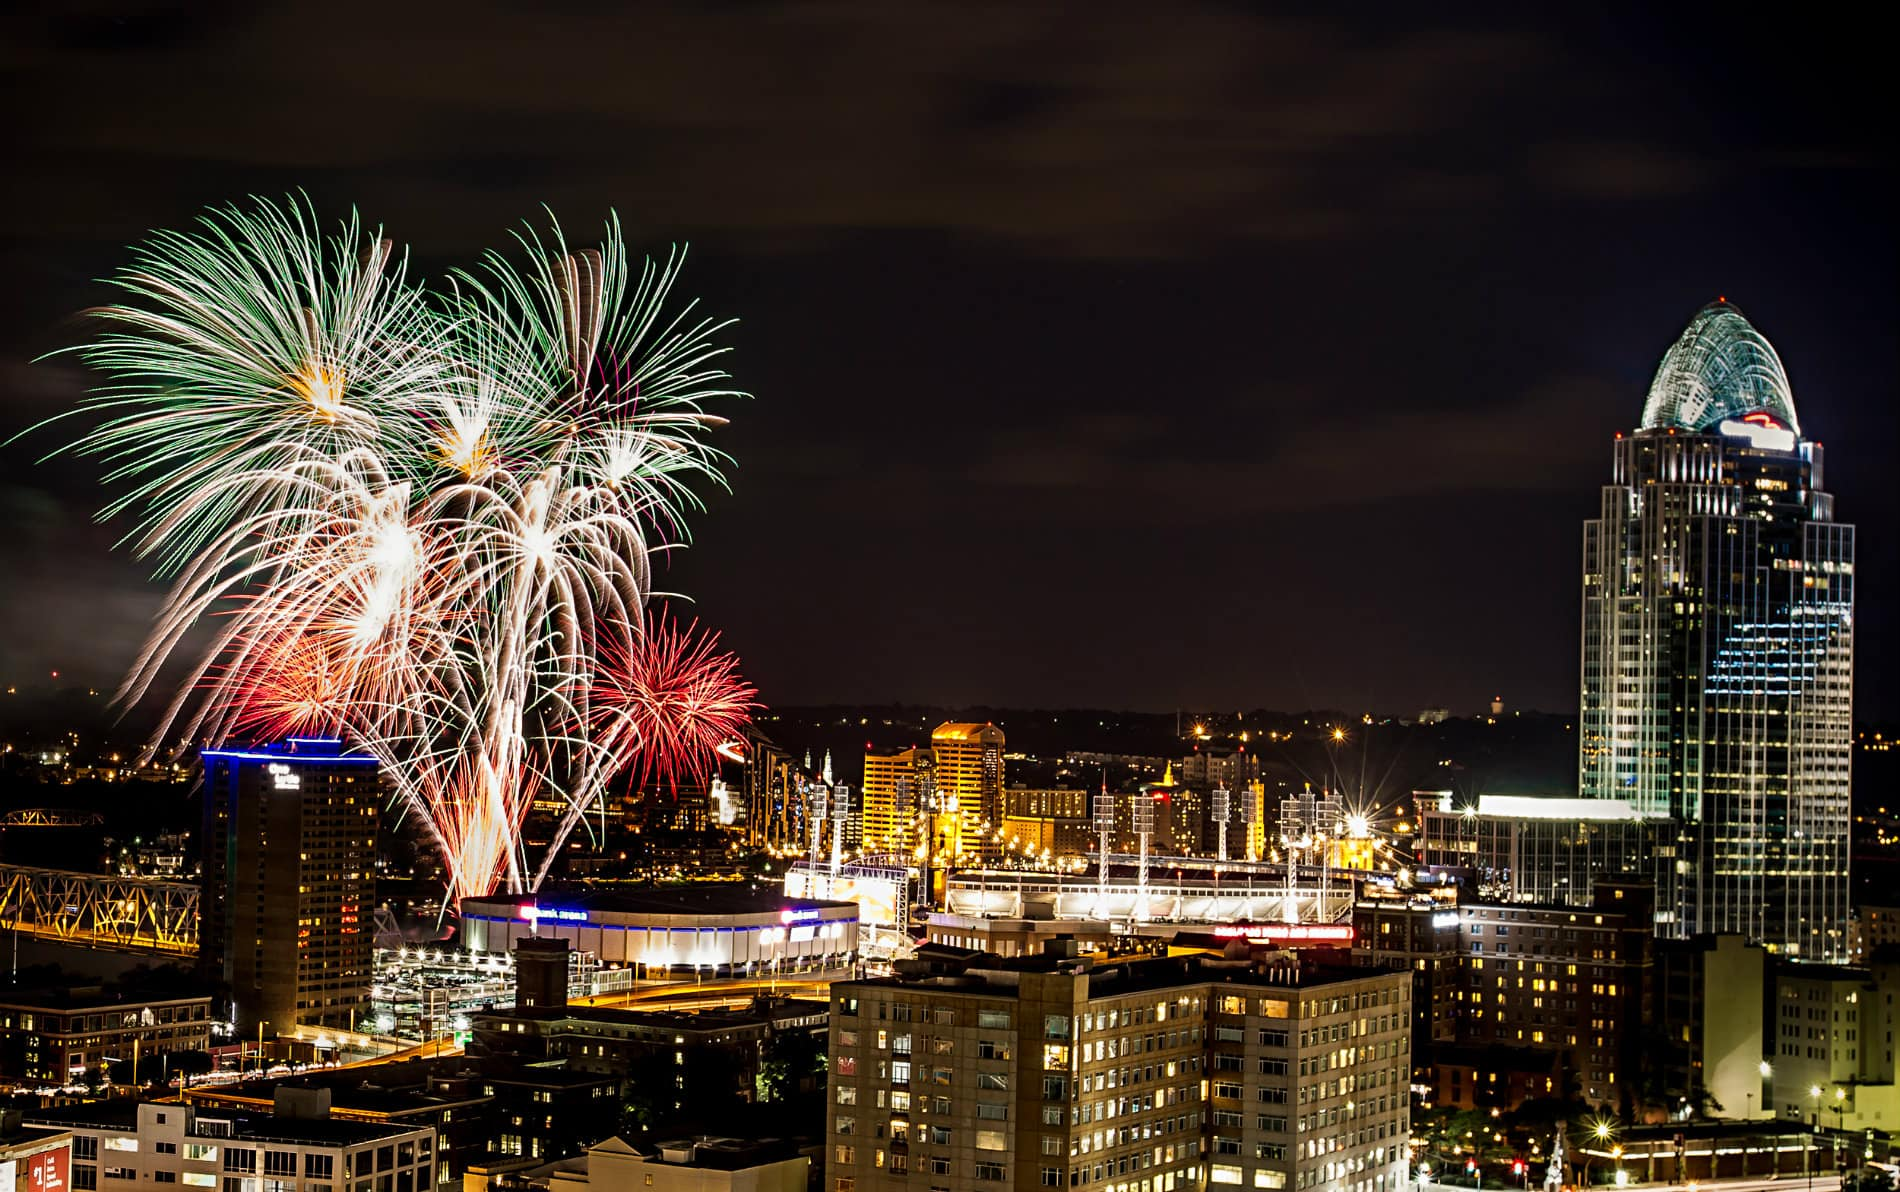 Lighted buildings with lights of blue, red, gold against a black night sky with red, green and white fireworks.